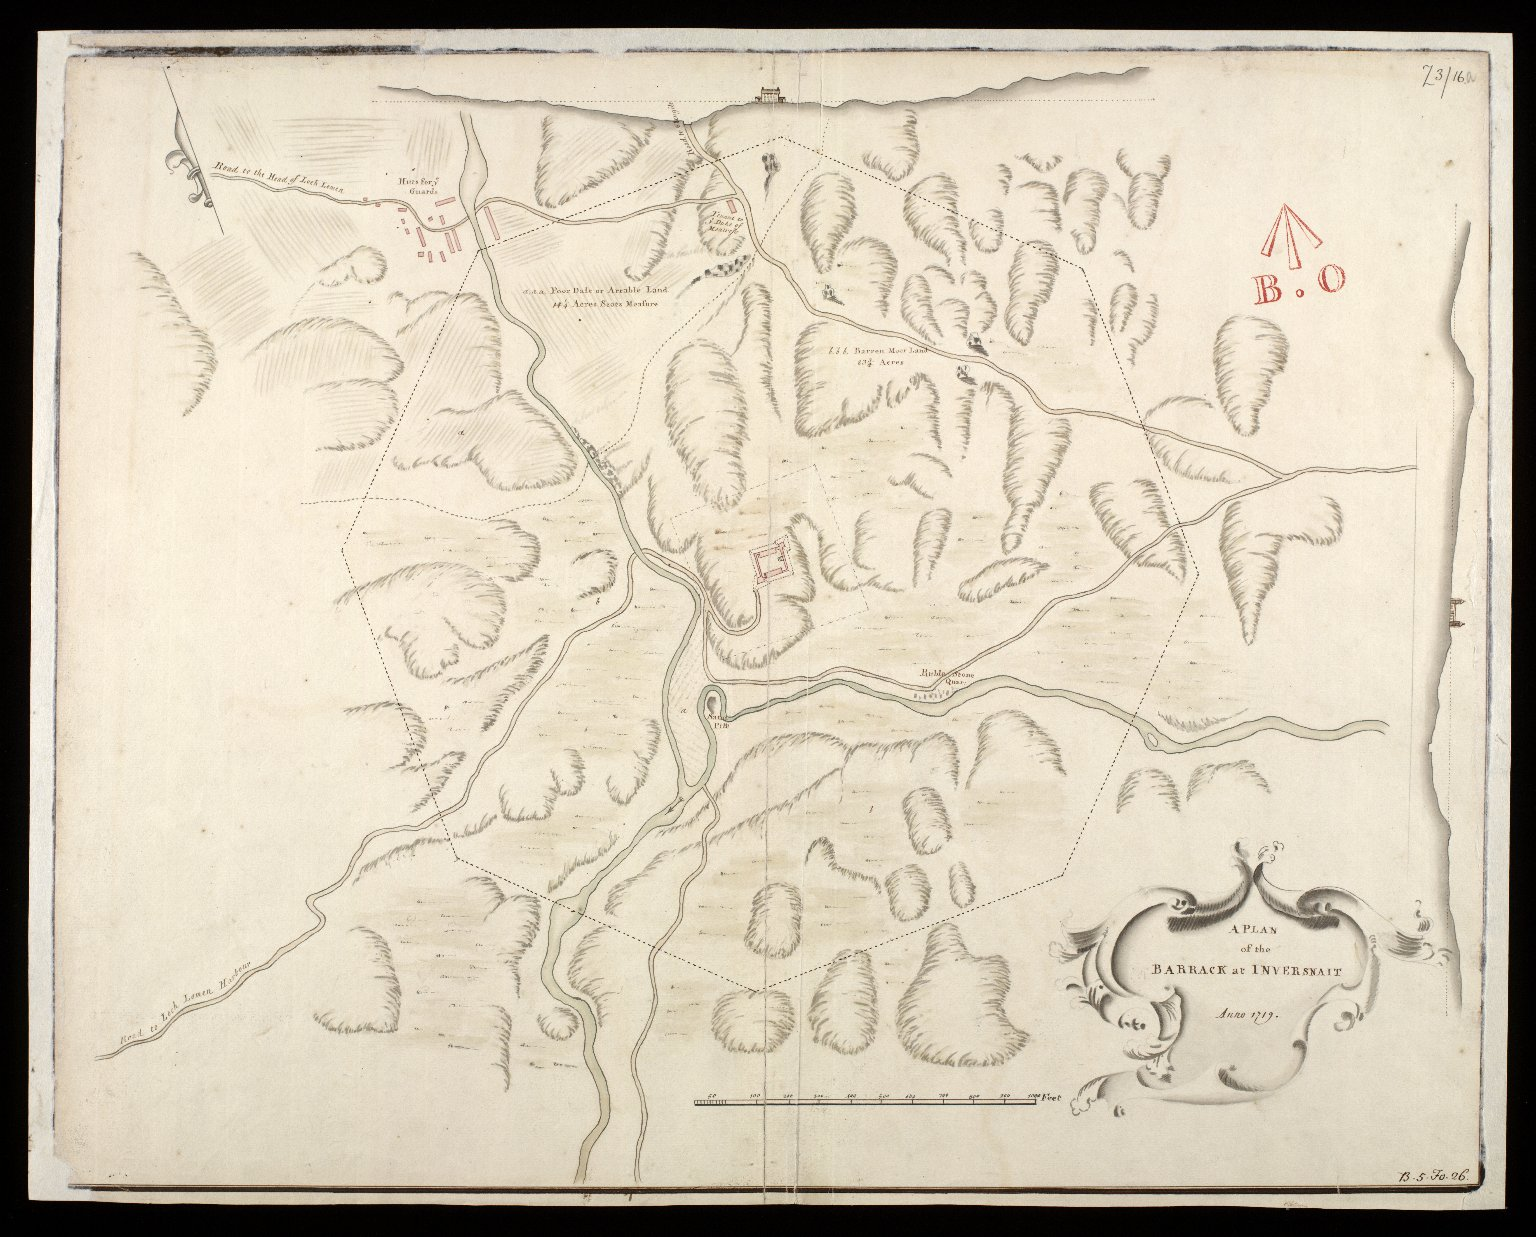 A Plan of the barrack at Inversnait [i.e. Inversnaid], anno 1719 [1 of 1]